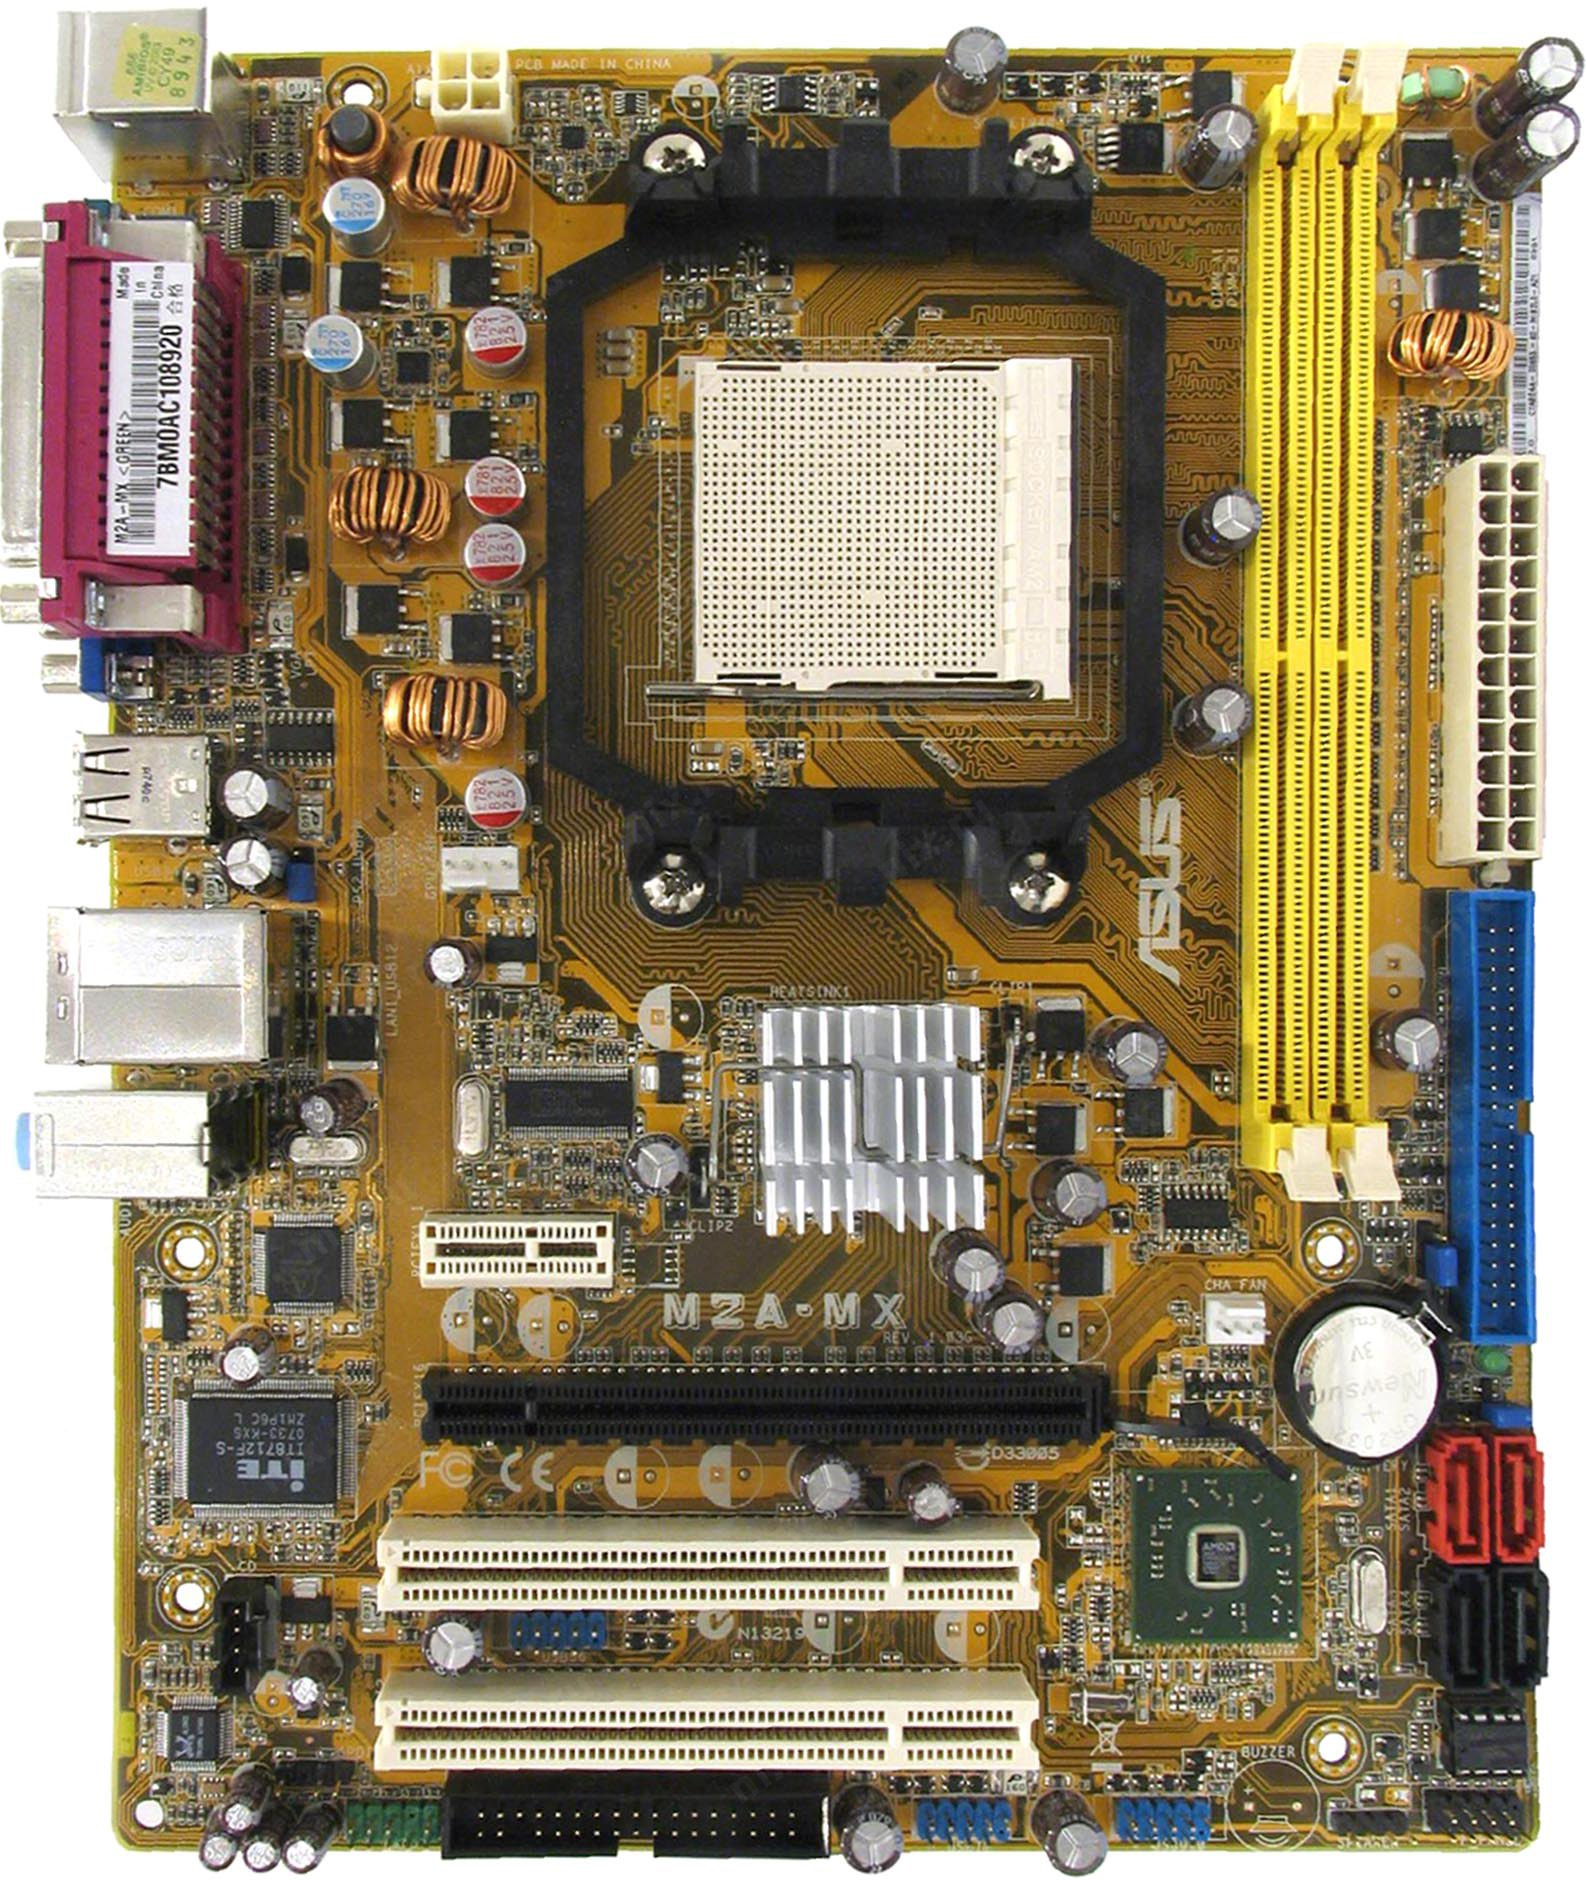 Asus M2A-MX AMD Chipset Driver for Windows